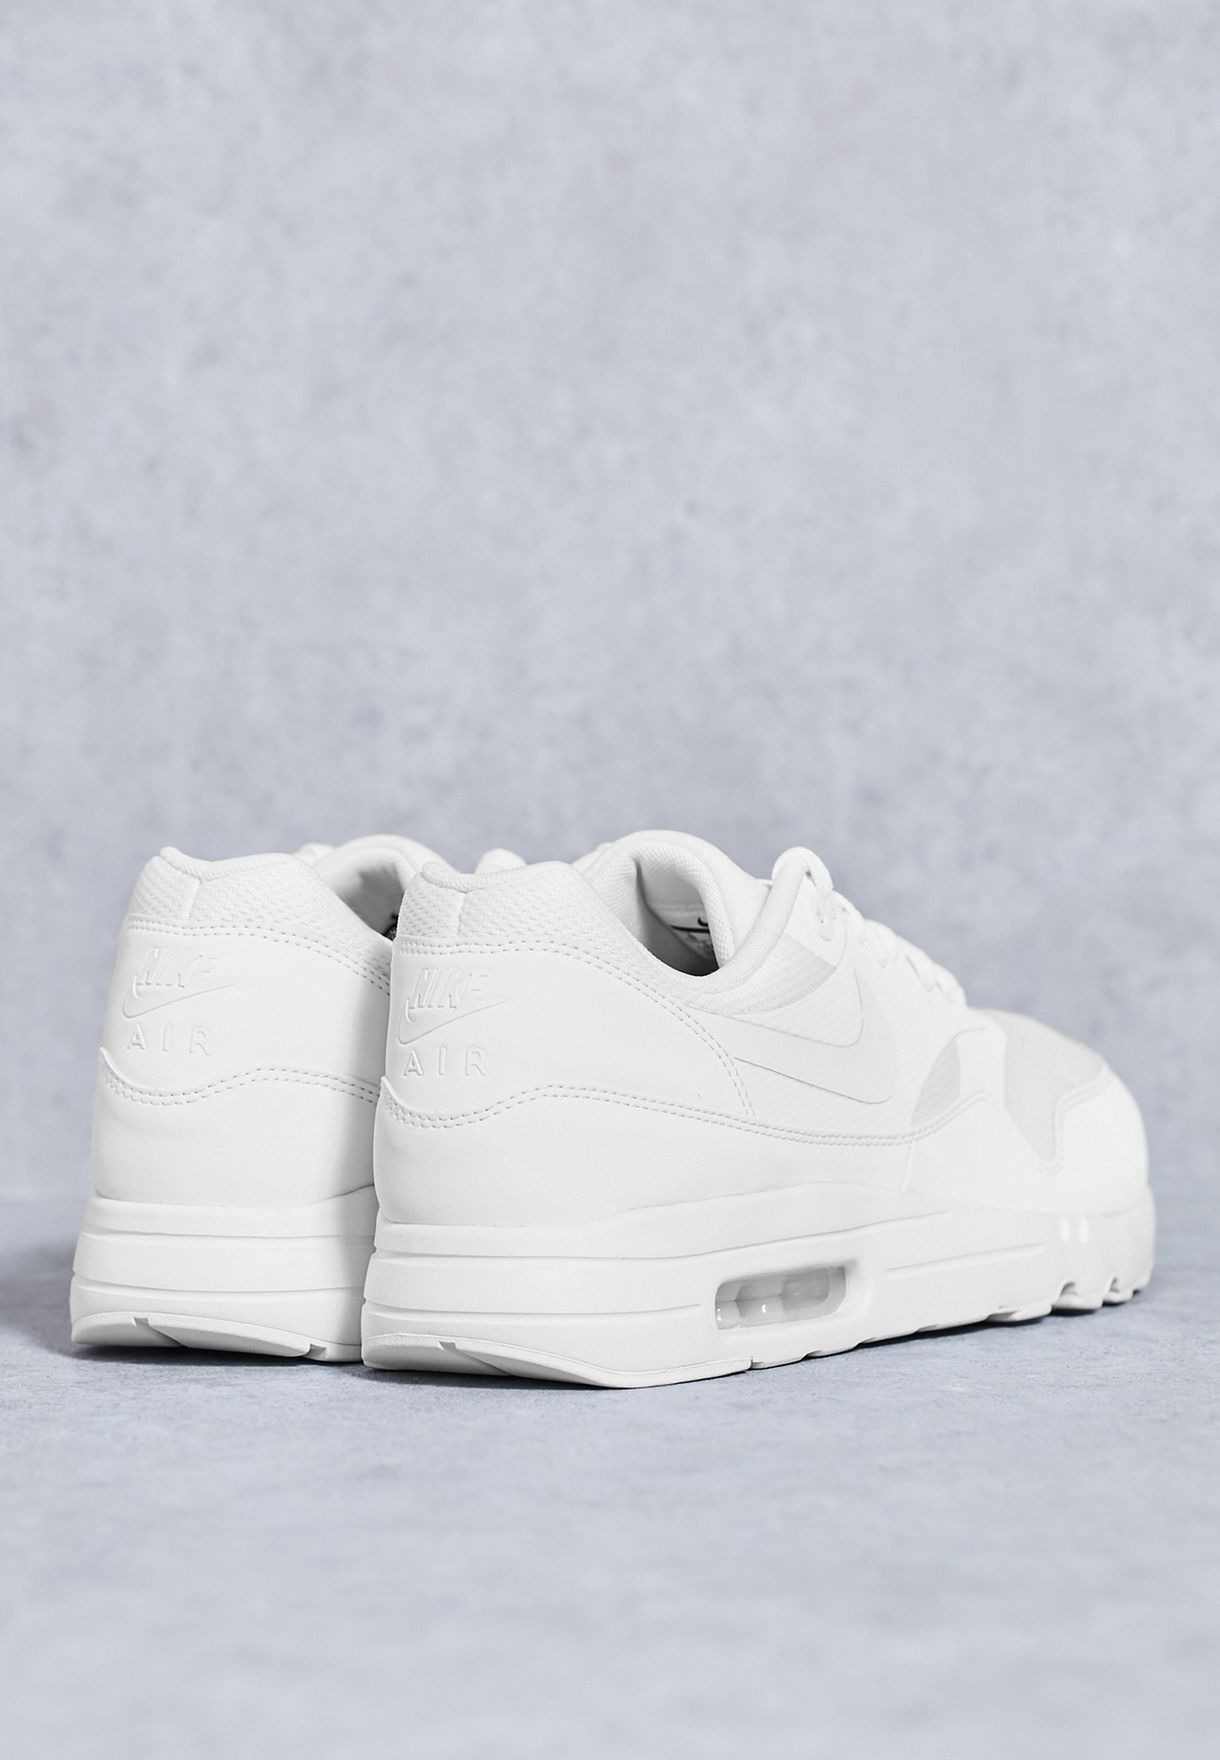 c3933202ed19 Shop Nike white Air Max 1 Ultra 2.0 Essential 875679-100 for Men in ...